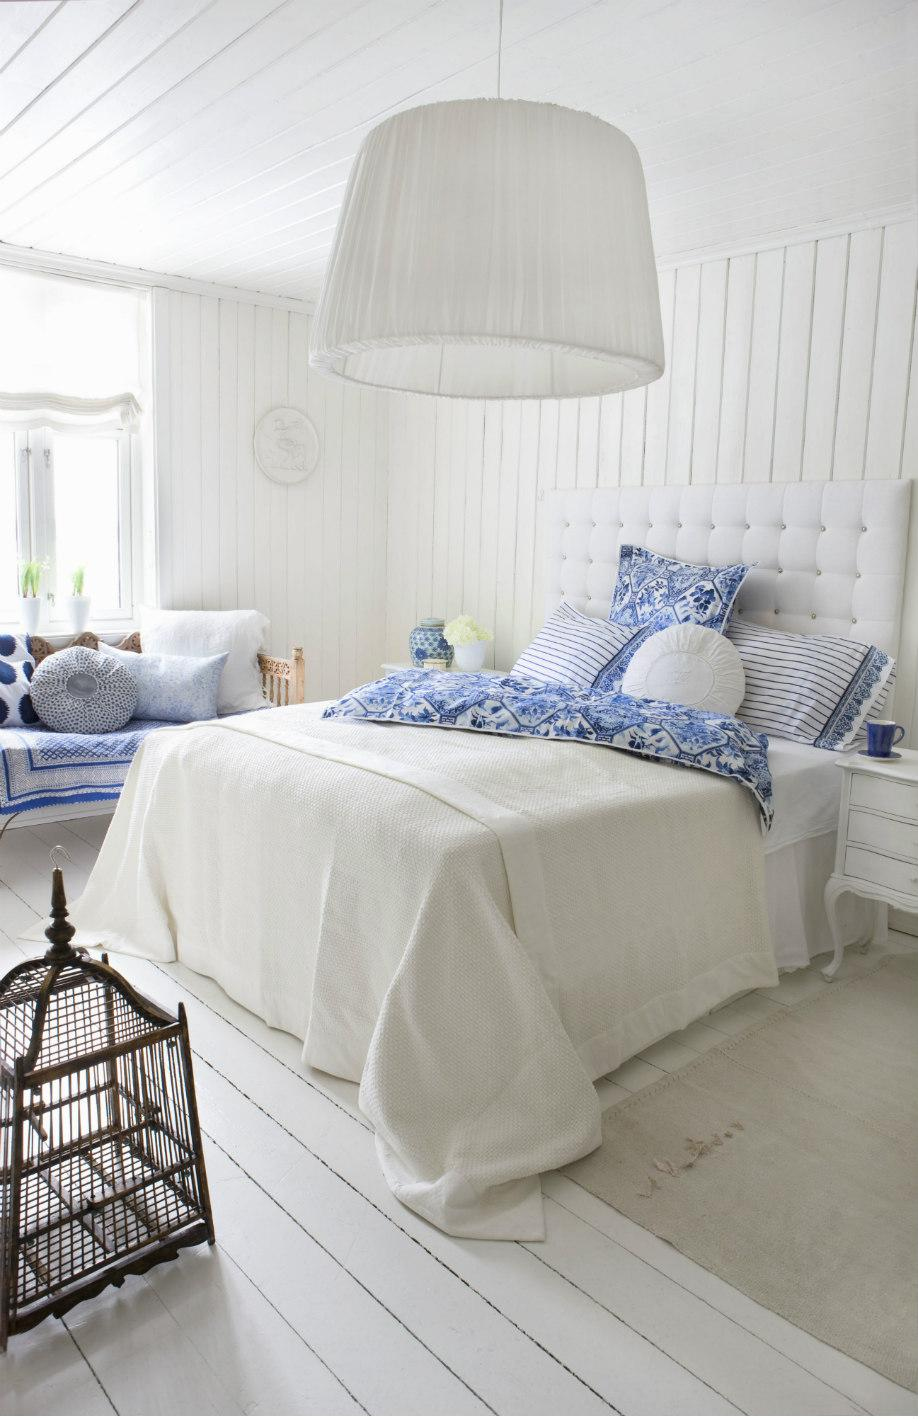 westwing-shabby-maritime-lit